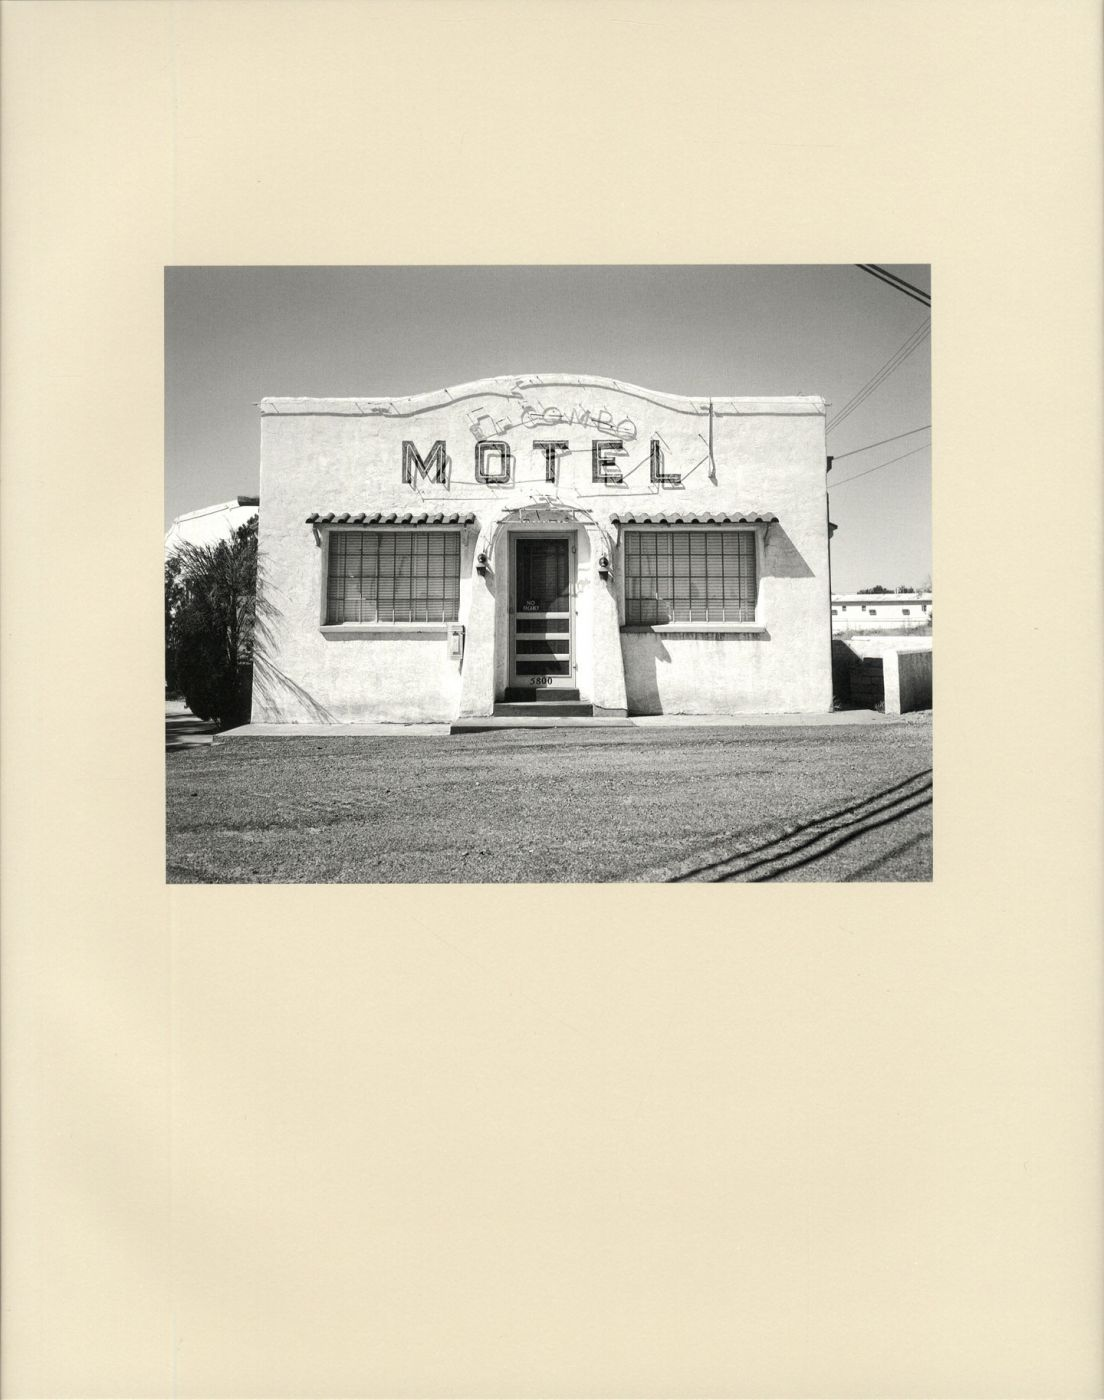 NZ Library #1: John Schott: Route 66, Limited Edition (NZ Library - Set One, Volume Six) [SIGNED]